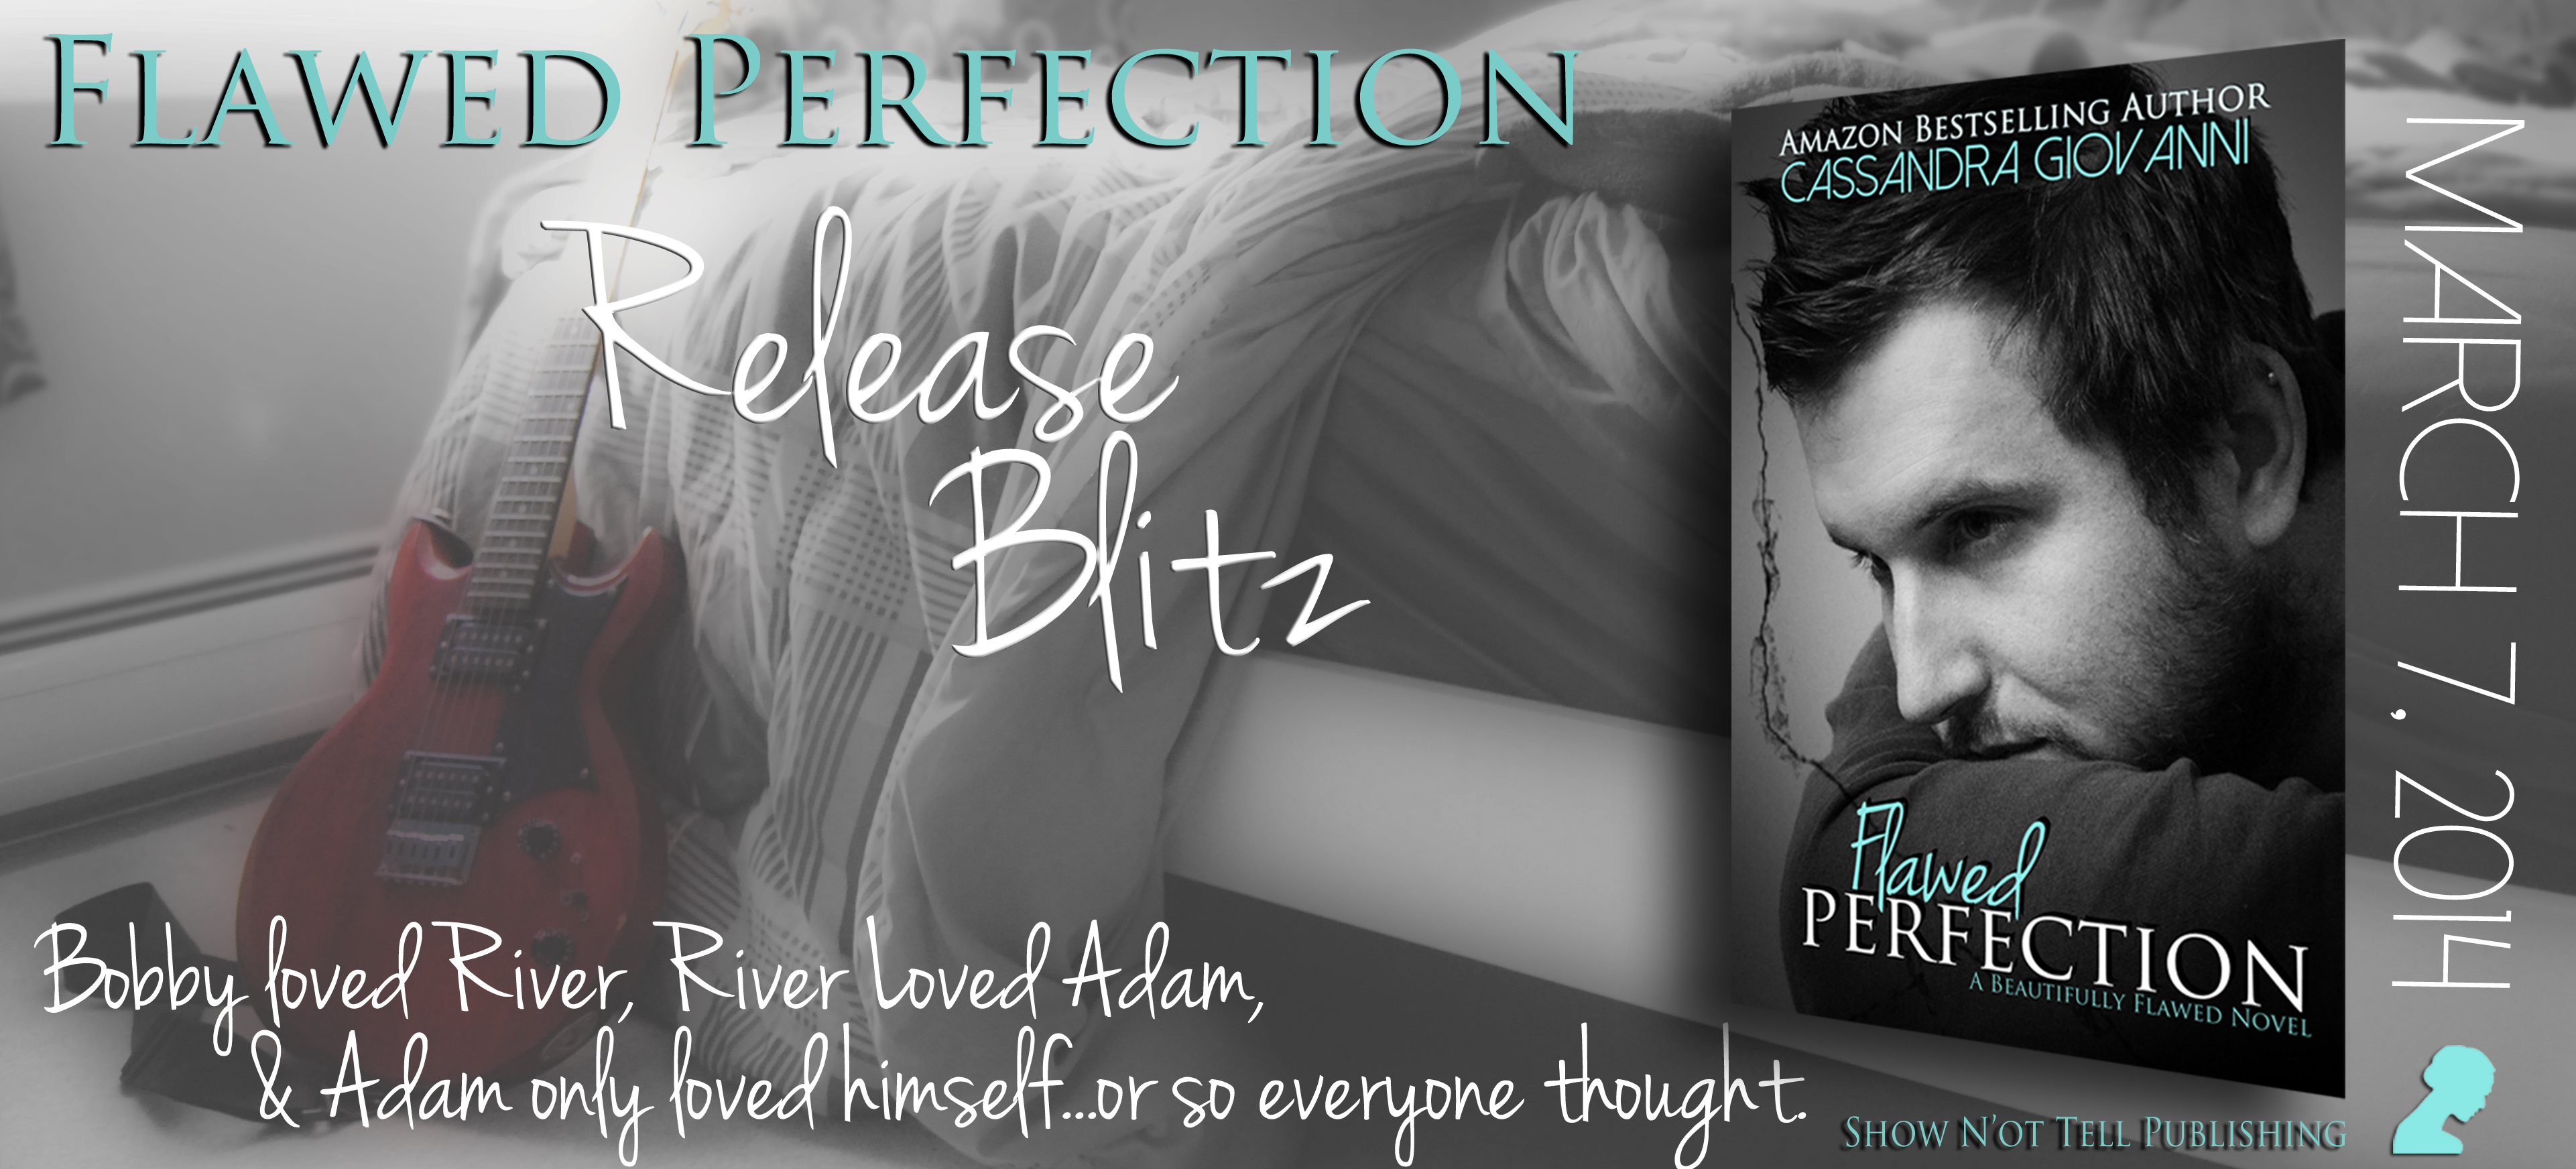 Flawed Perfection Release Day Blitz!!